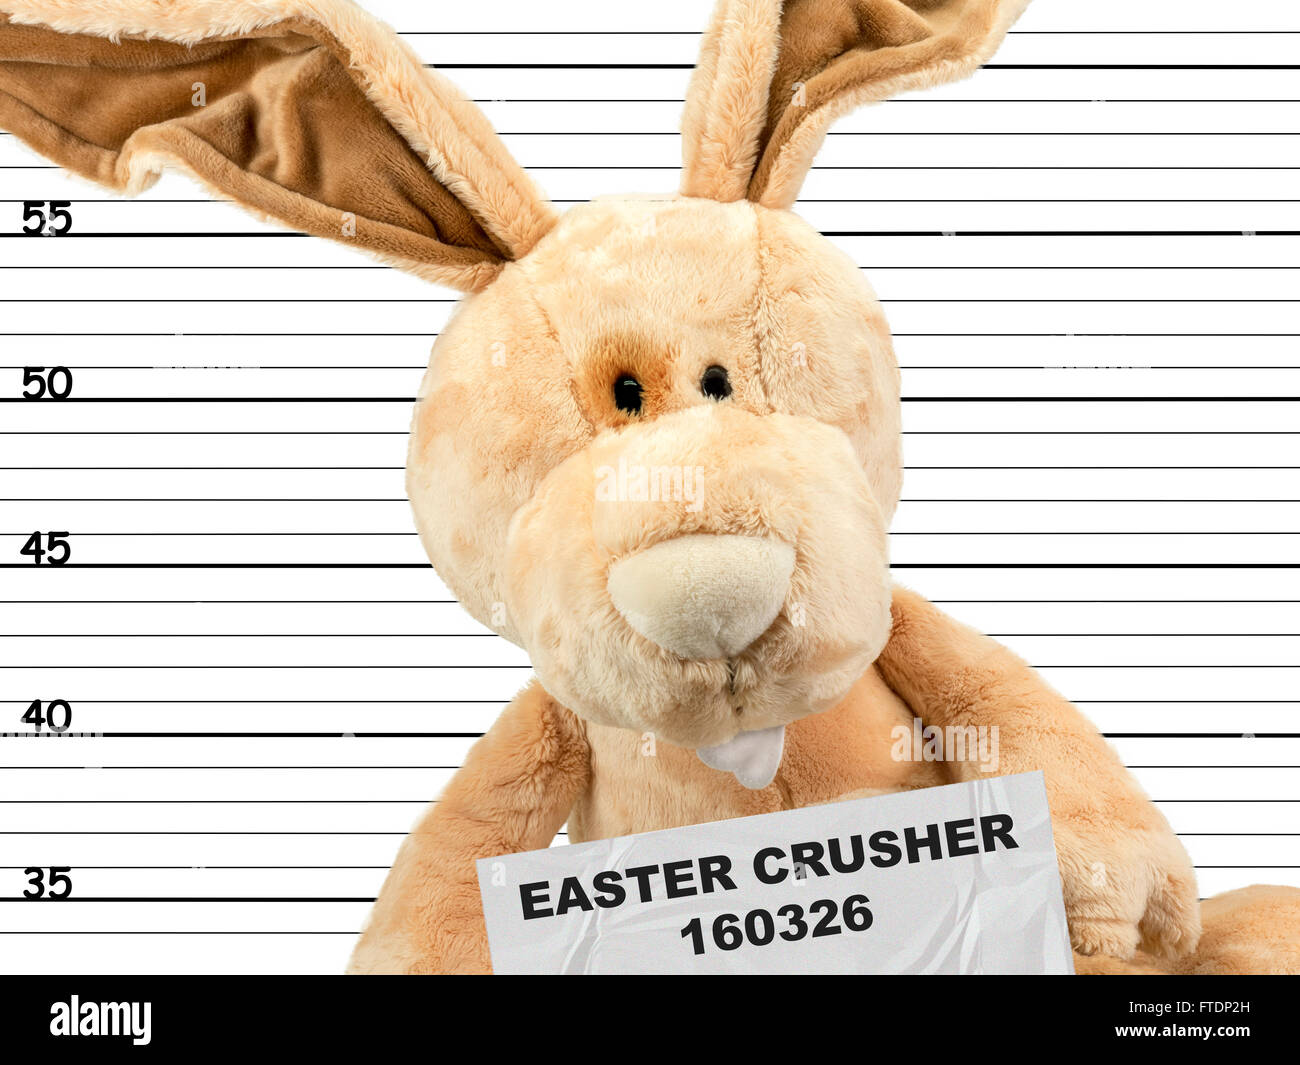 criminal easter bunny in the police station - Stock Image